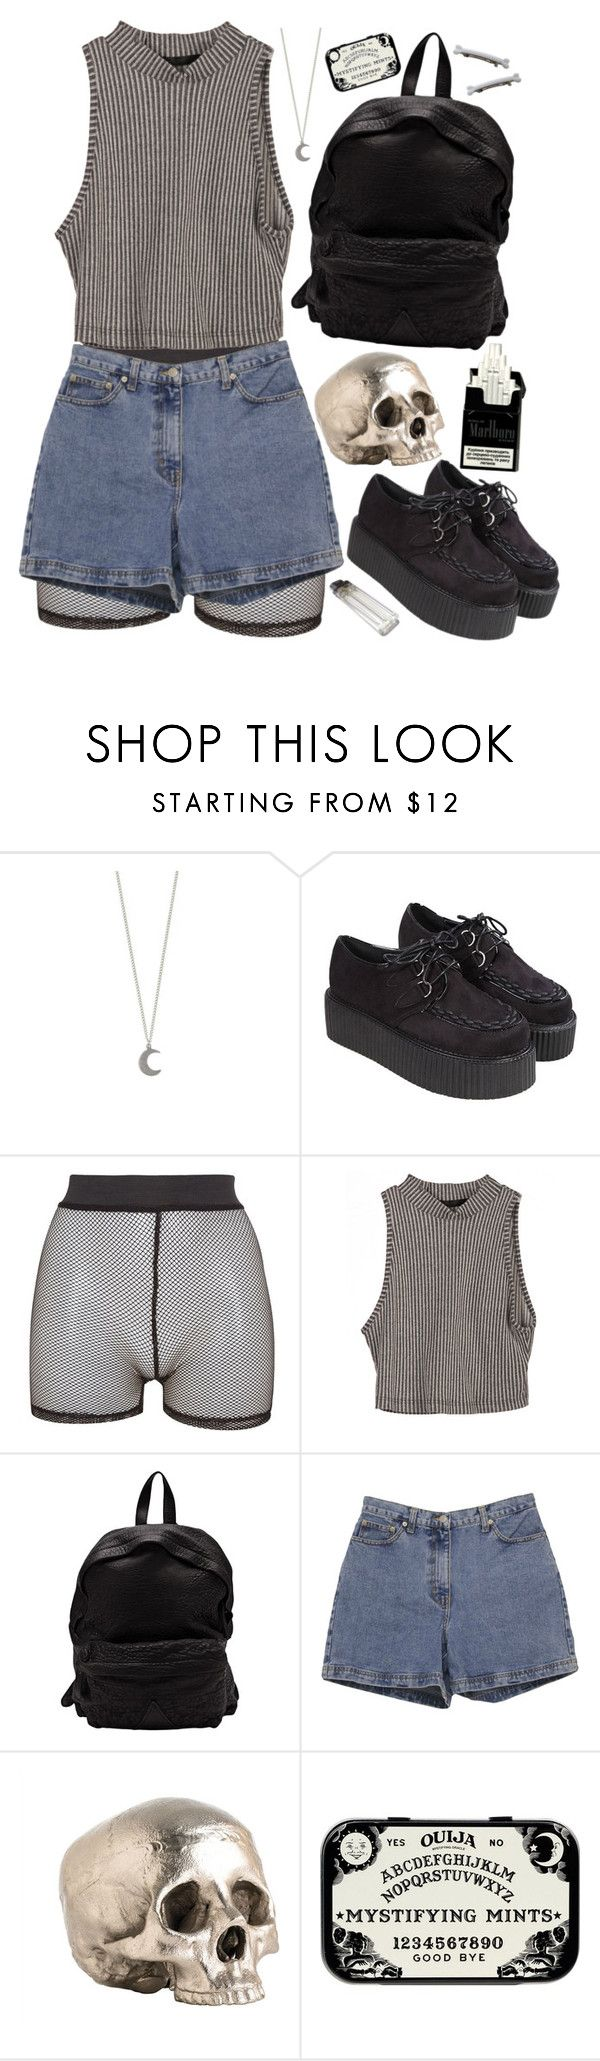 """""""monster"""" by dahmergirl ❤ liked on Polyvore featuring Bitching & Junkfood, Officine Creative, Ann Taylor and Arteriors"""